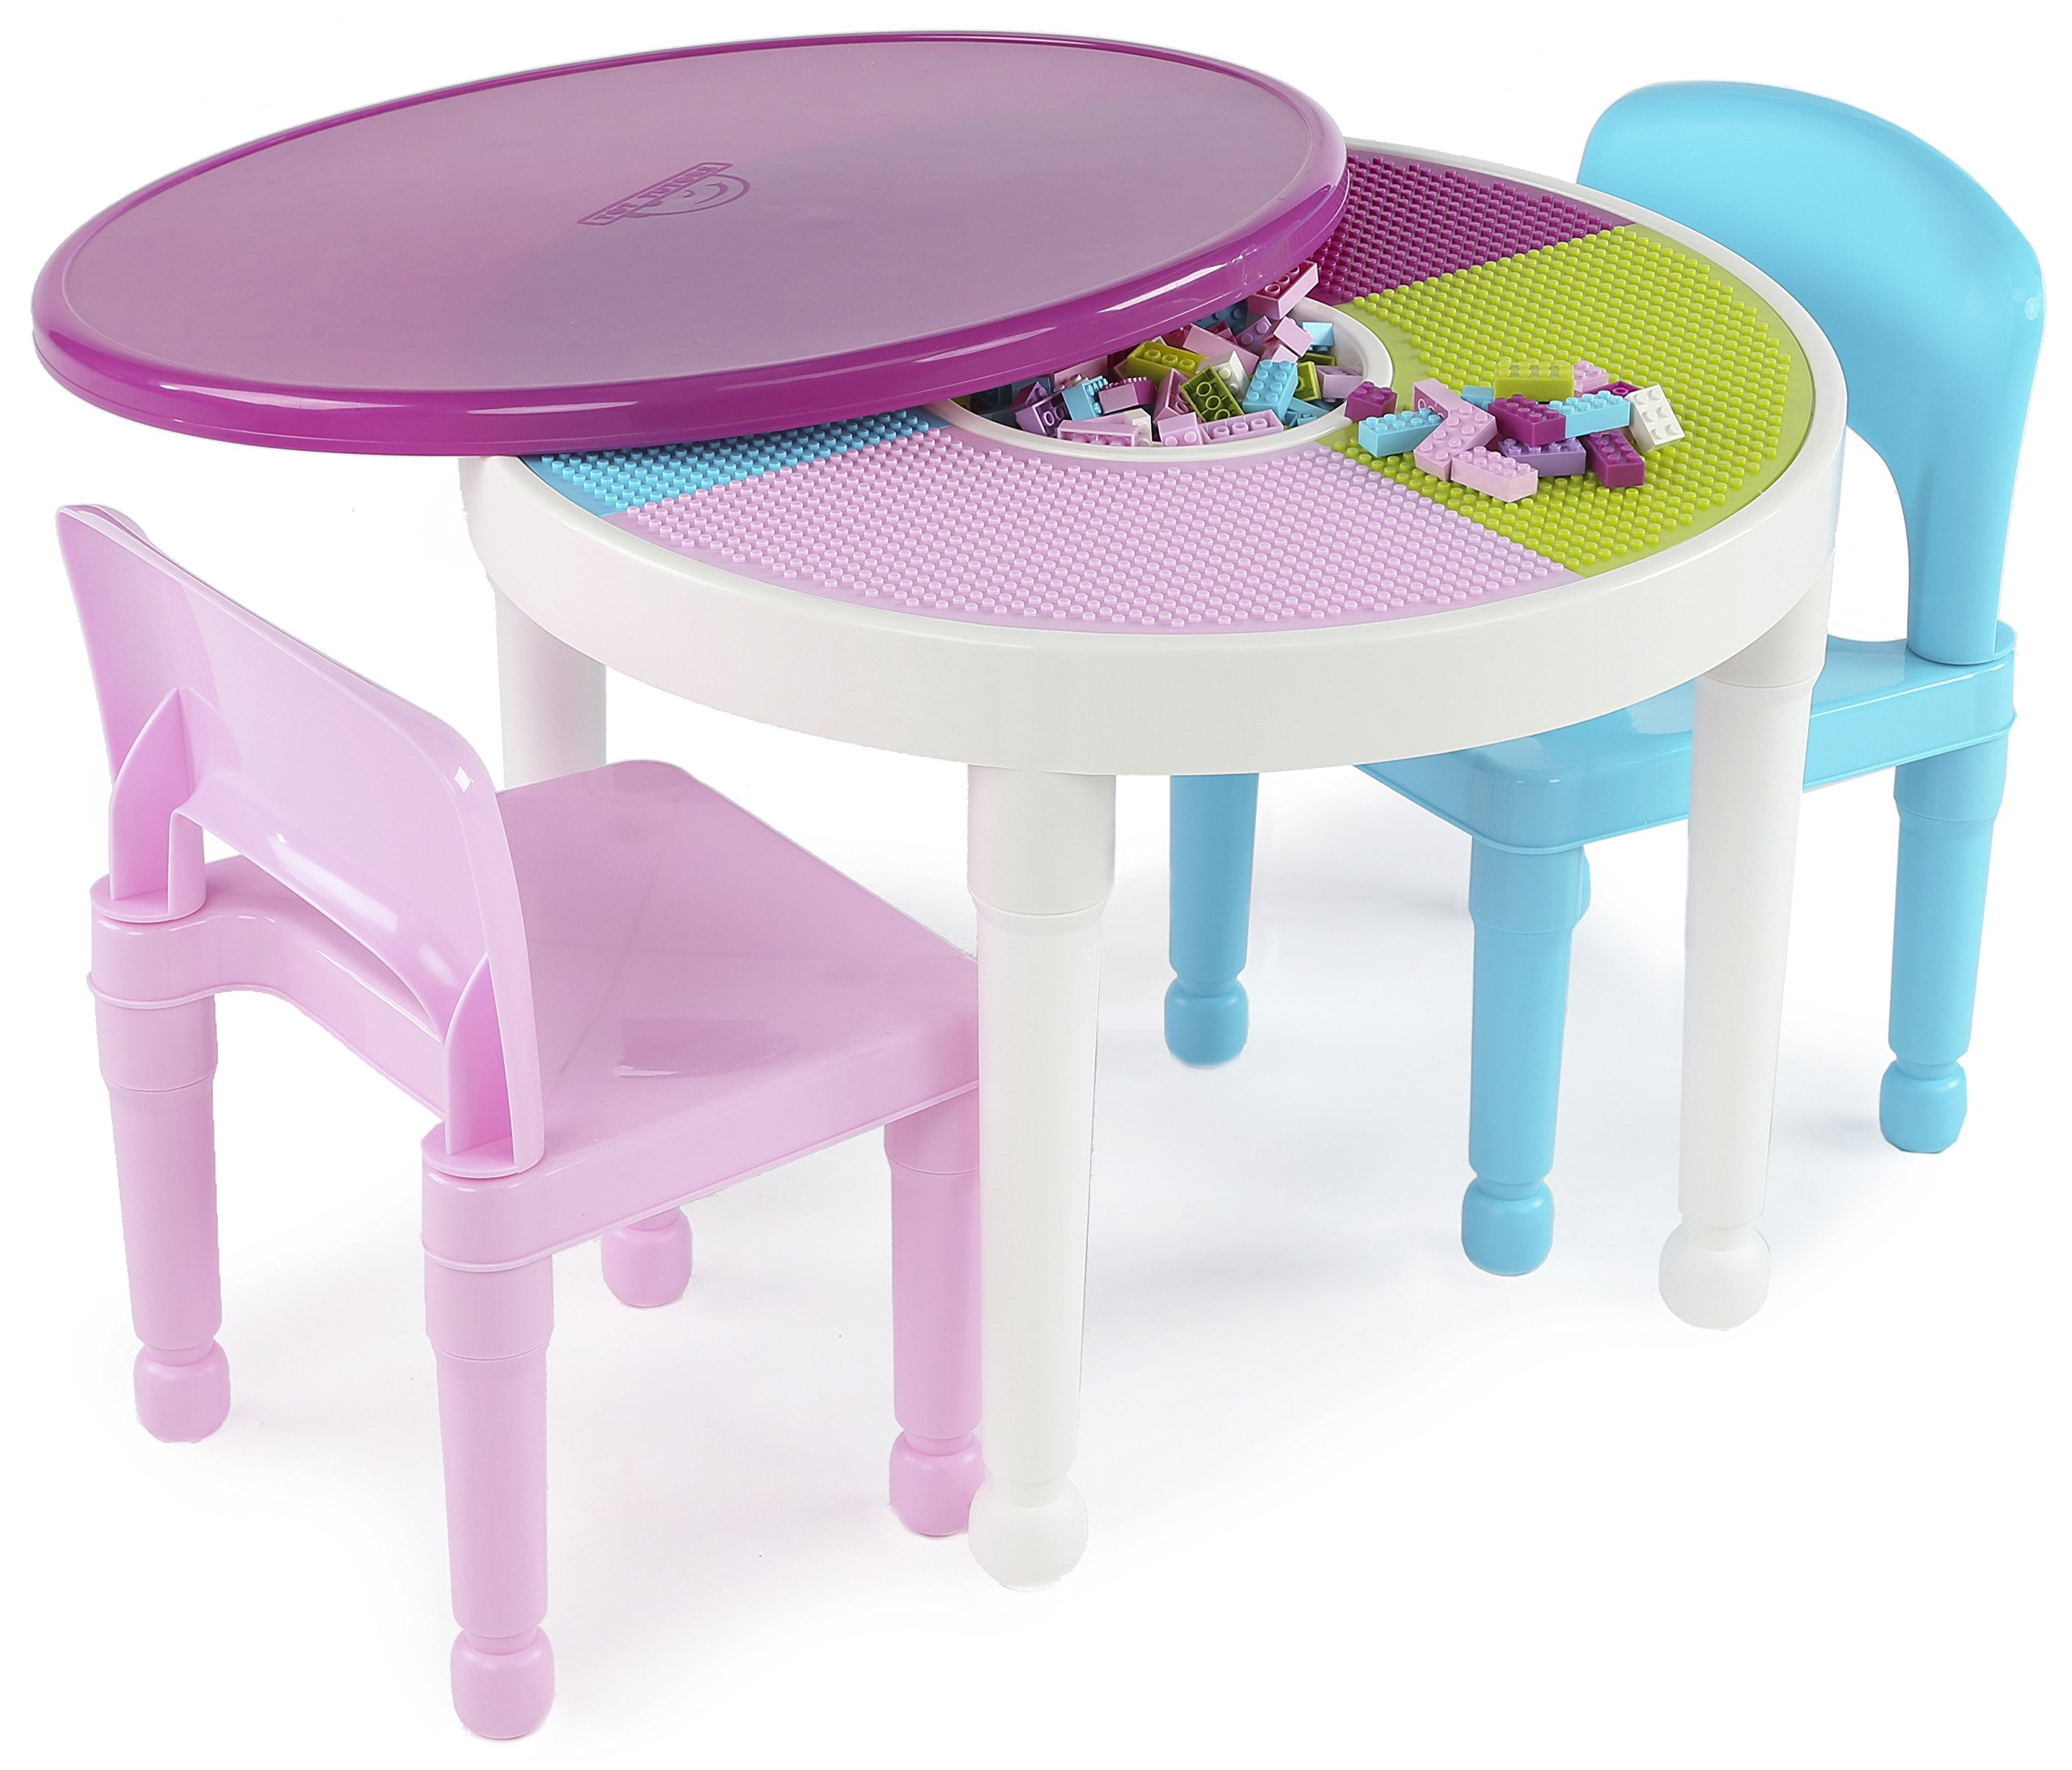 Tot Tutors Kids 2-in-1 Plastic Building Blocks-Compatible Activity Table and 2 Chairs Set, Round, Pink/Light Blue Colors by Tot Tutors